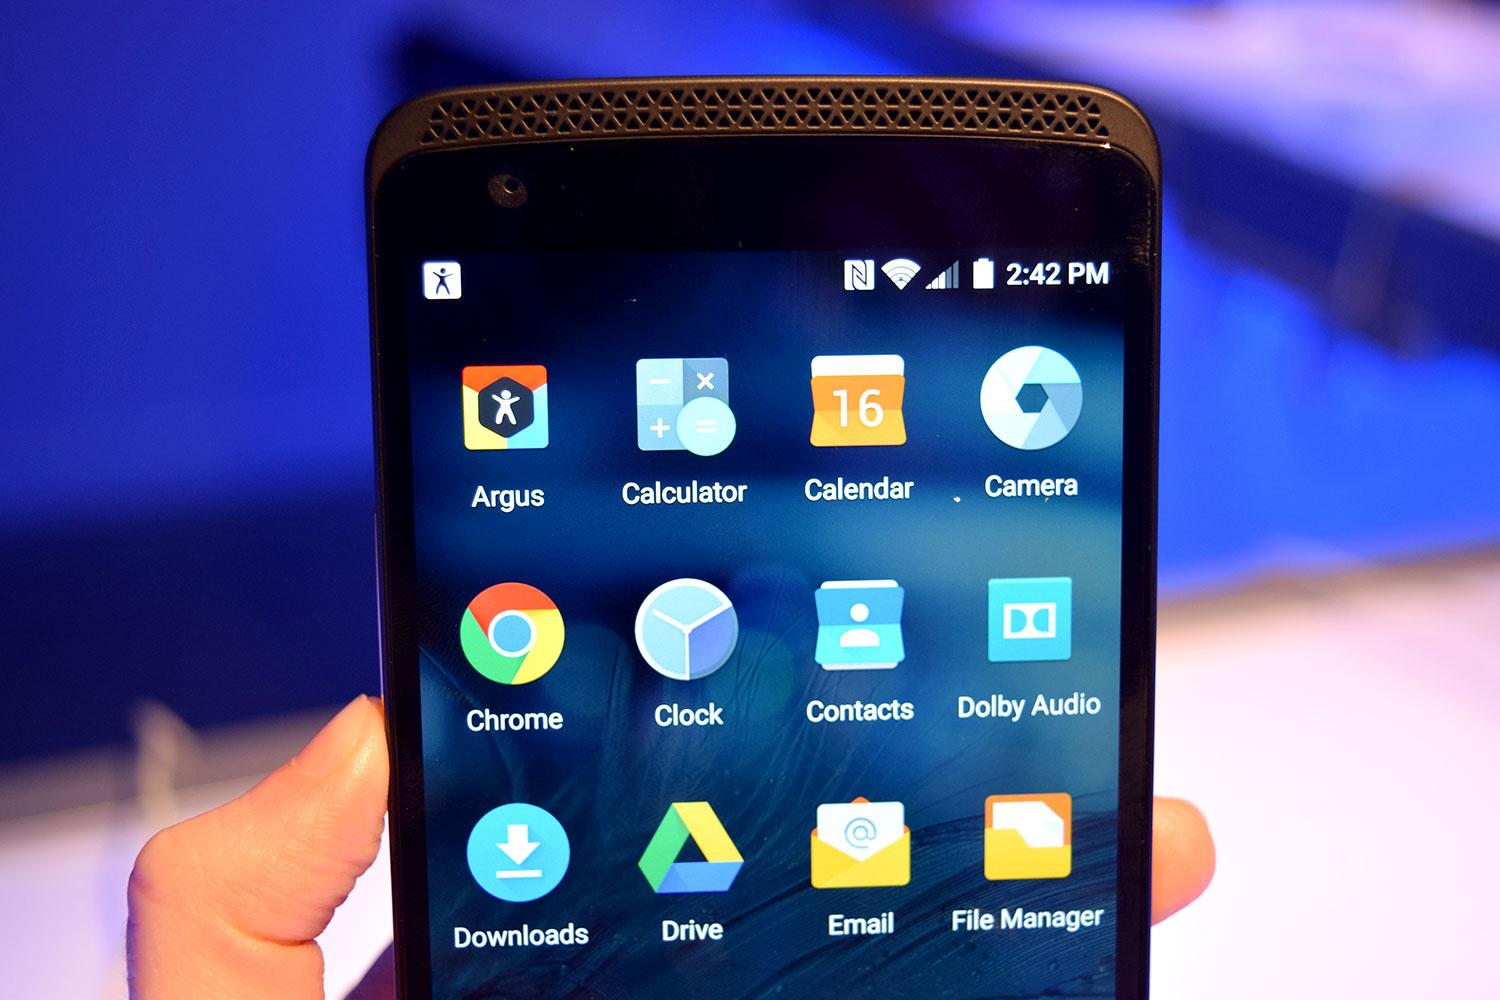 How to download apps on a zte phone